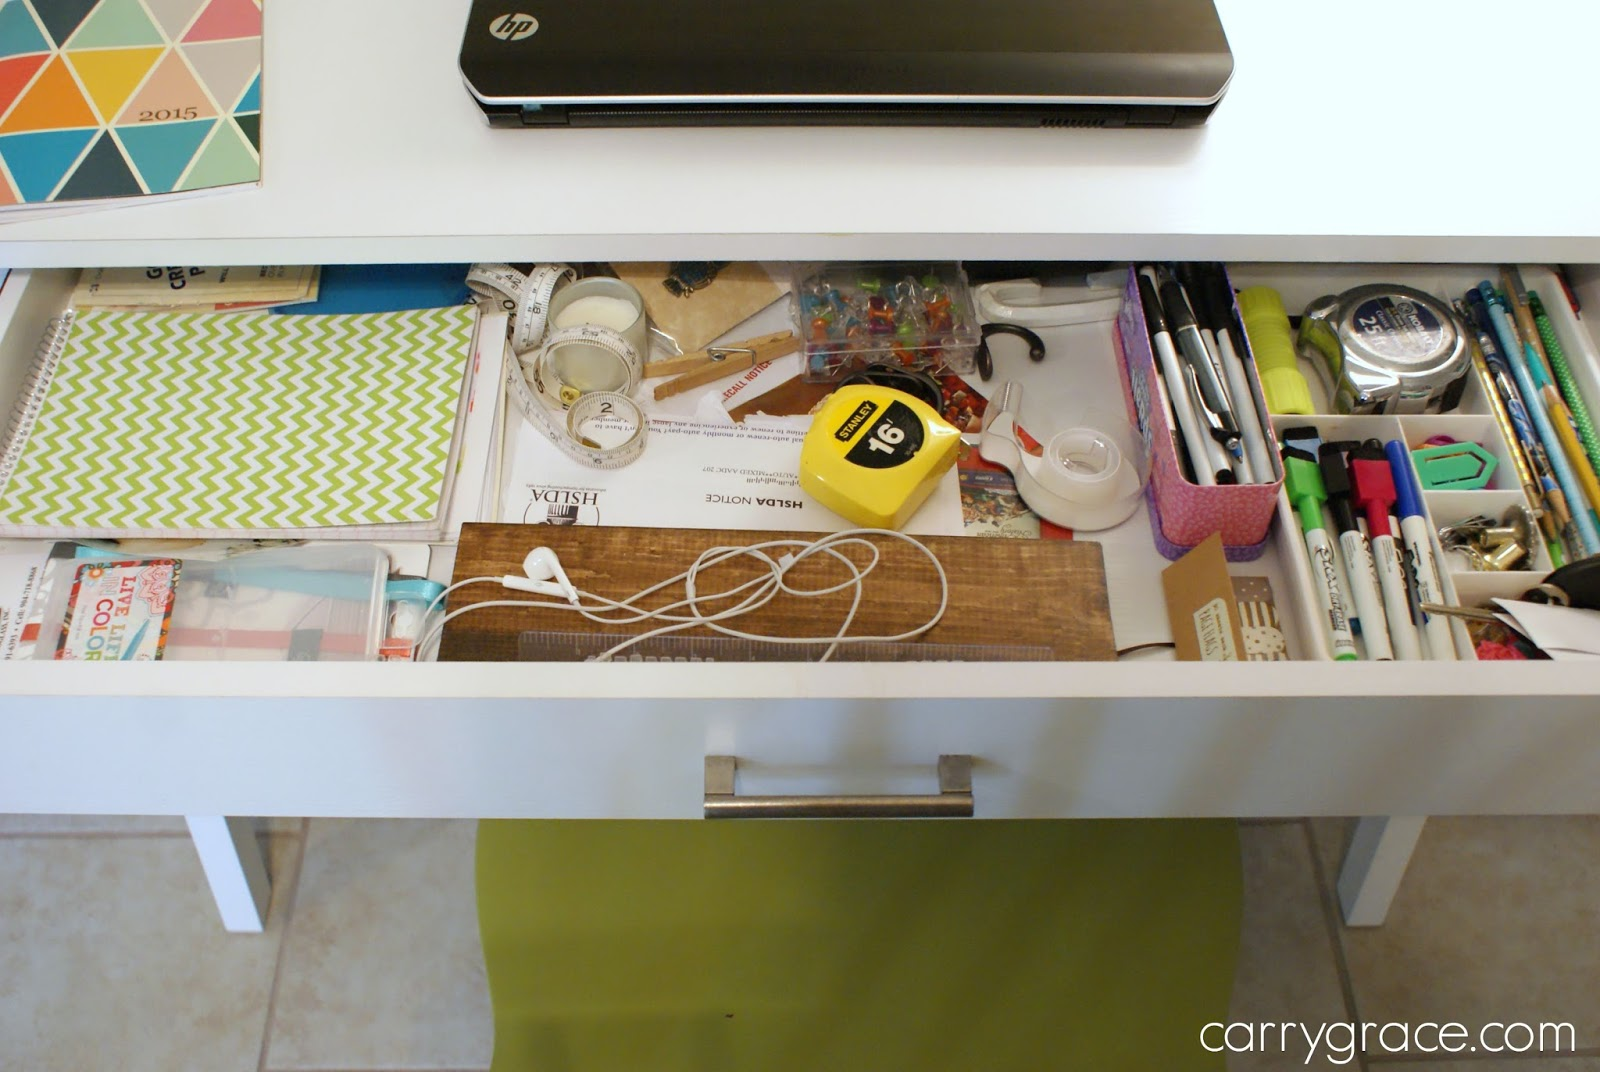 Carry Grace: Organize It- Kitchen Junk Drawer & Desk Drawer